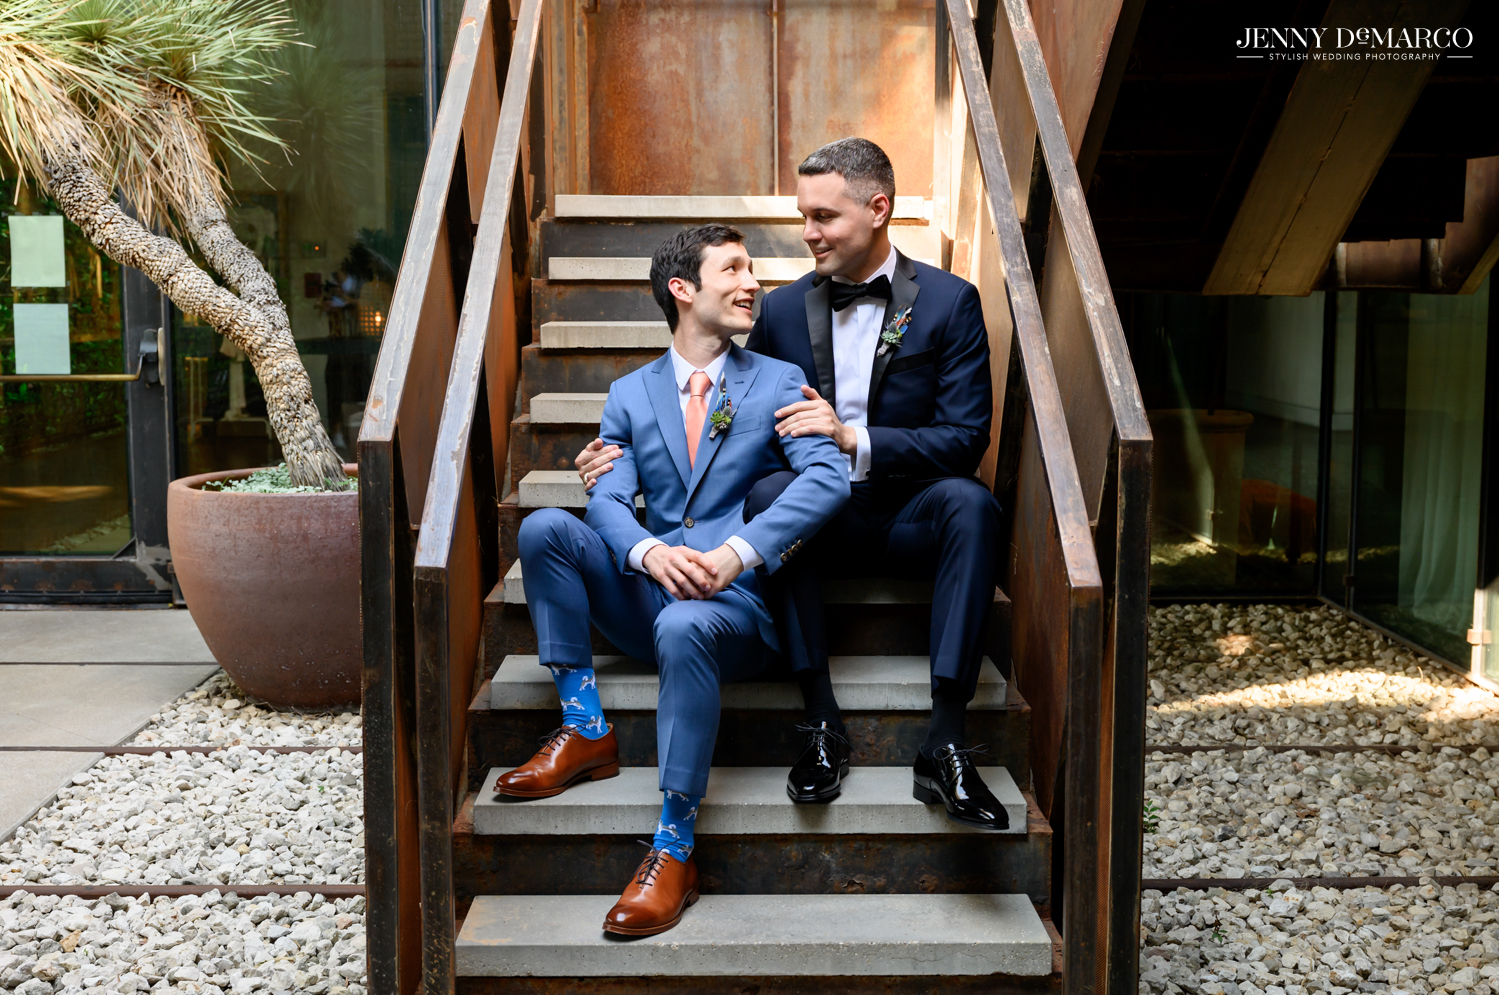 Grooms sitting on stairs and looking at each other